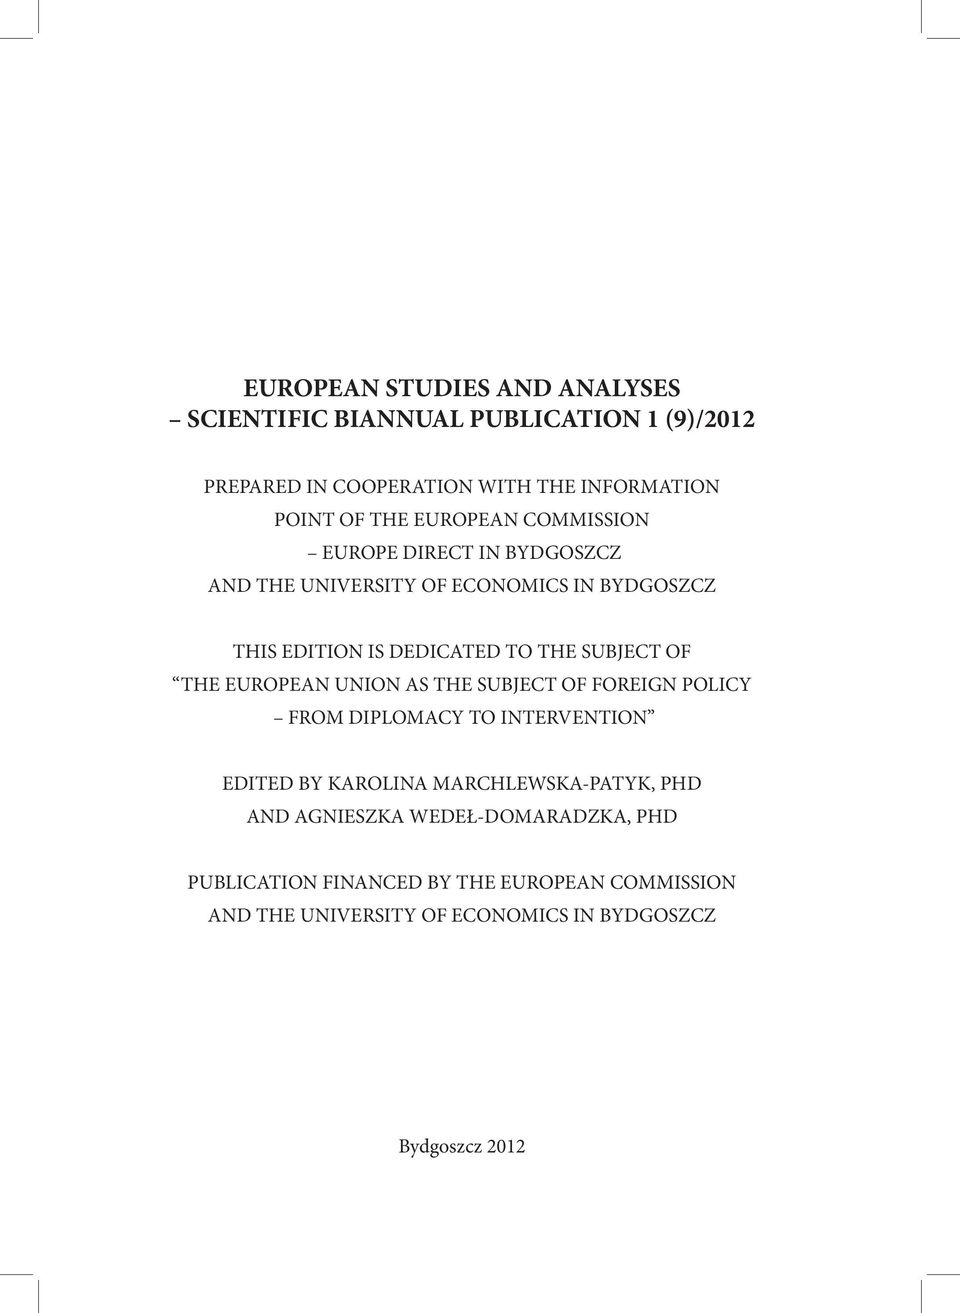 OF THE EUROPEAN UNION AS THE SUBJECT OF FOREIGN POLICY FROM DIPLOMACY TO INTERVENTION EDITED BY KAROLINA MARCHLEWSKA-PATYK, PHD AND